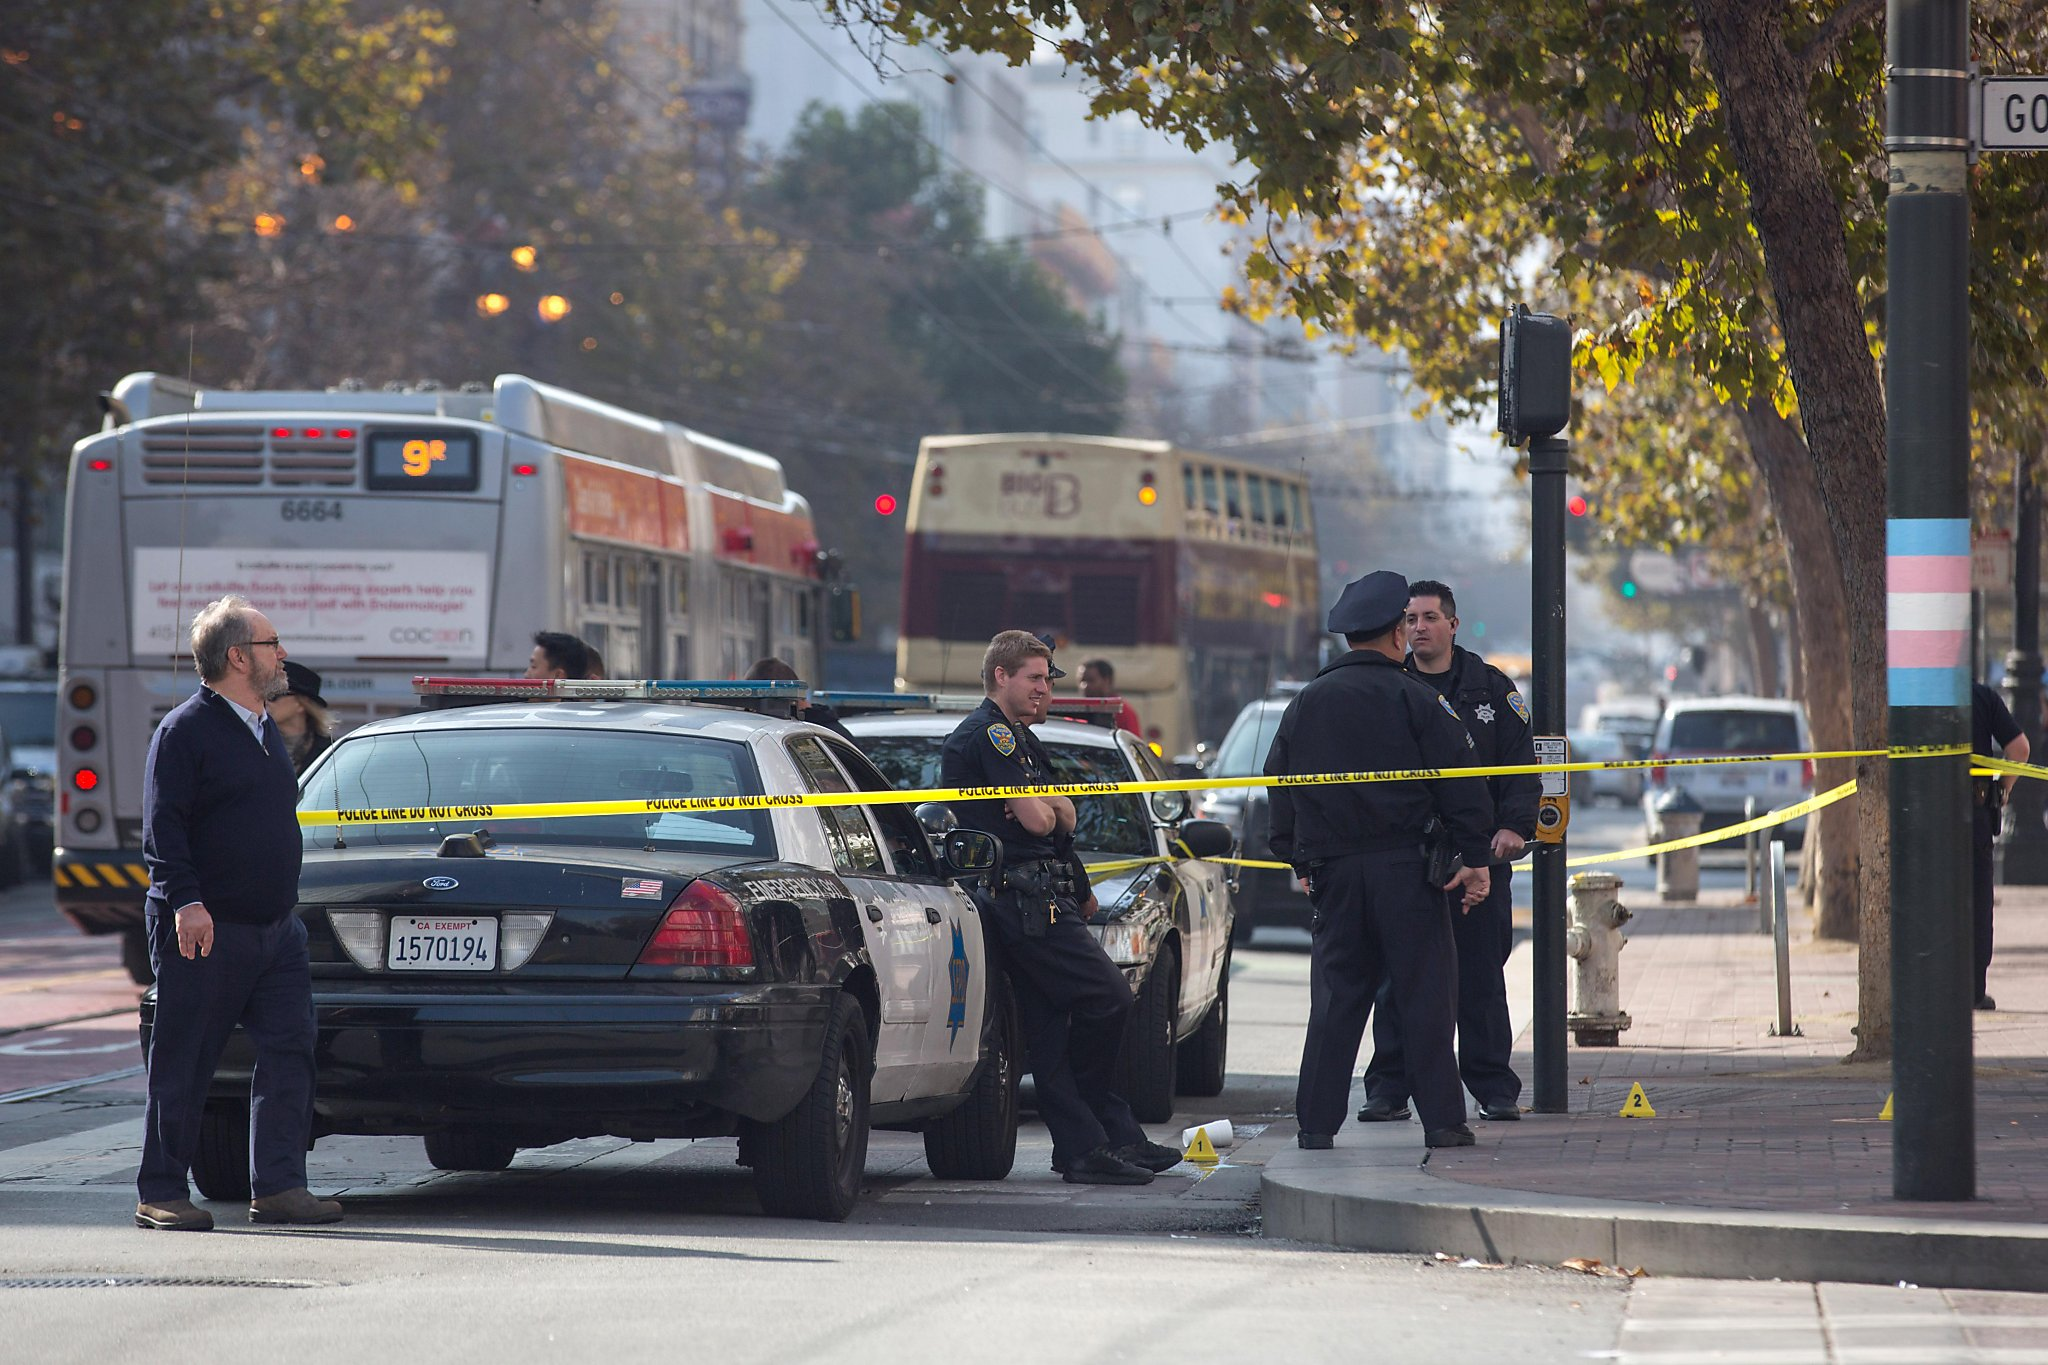 Man shot in broad daylight on SF's Market Street, witnesses say